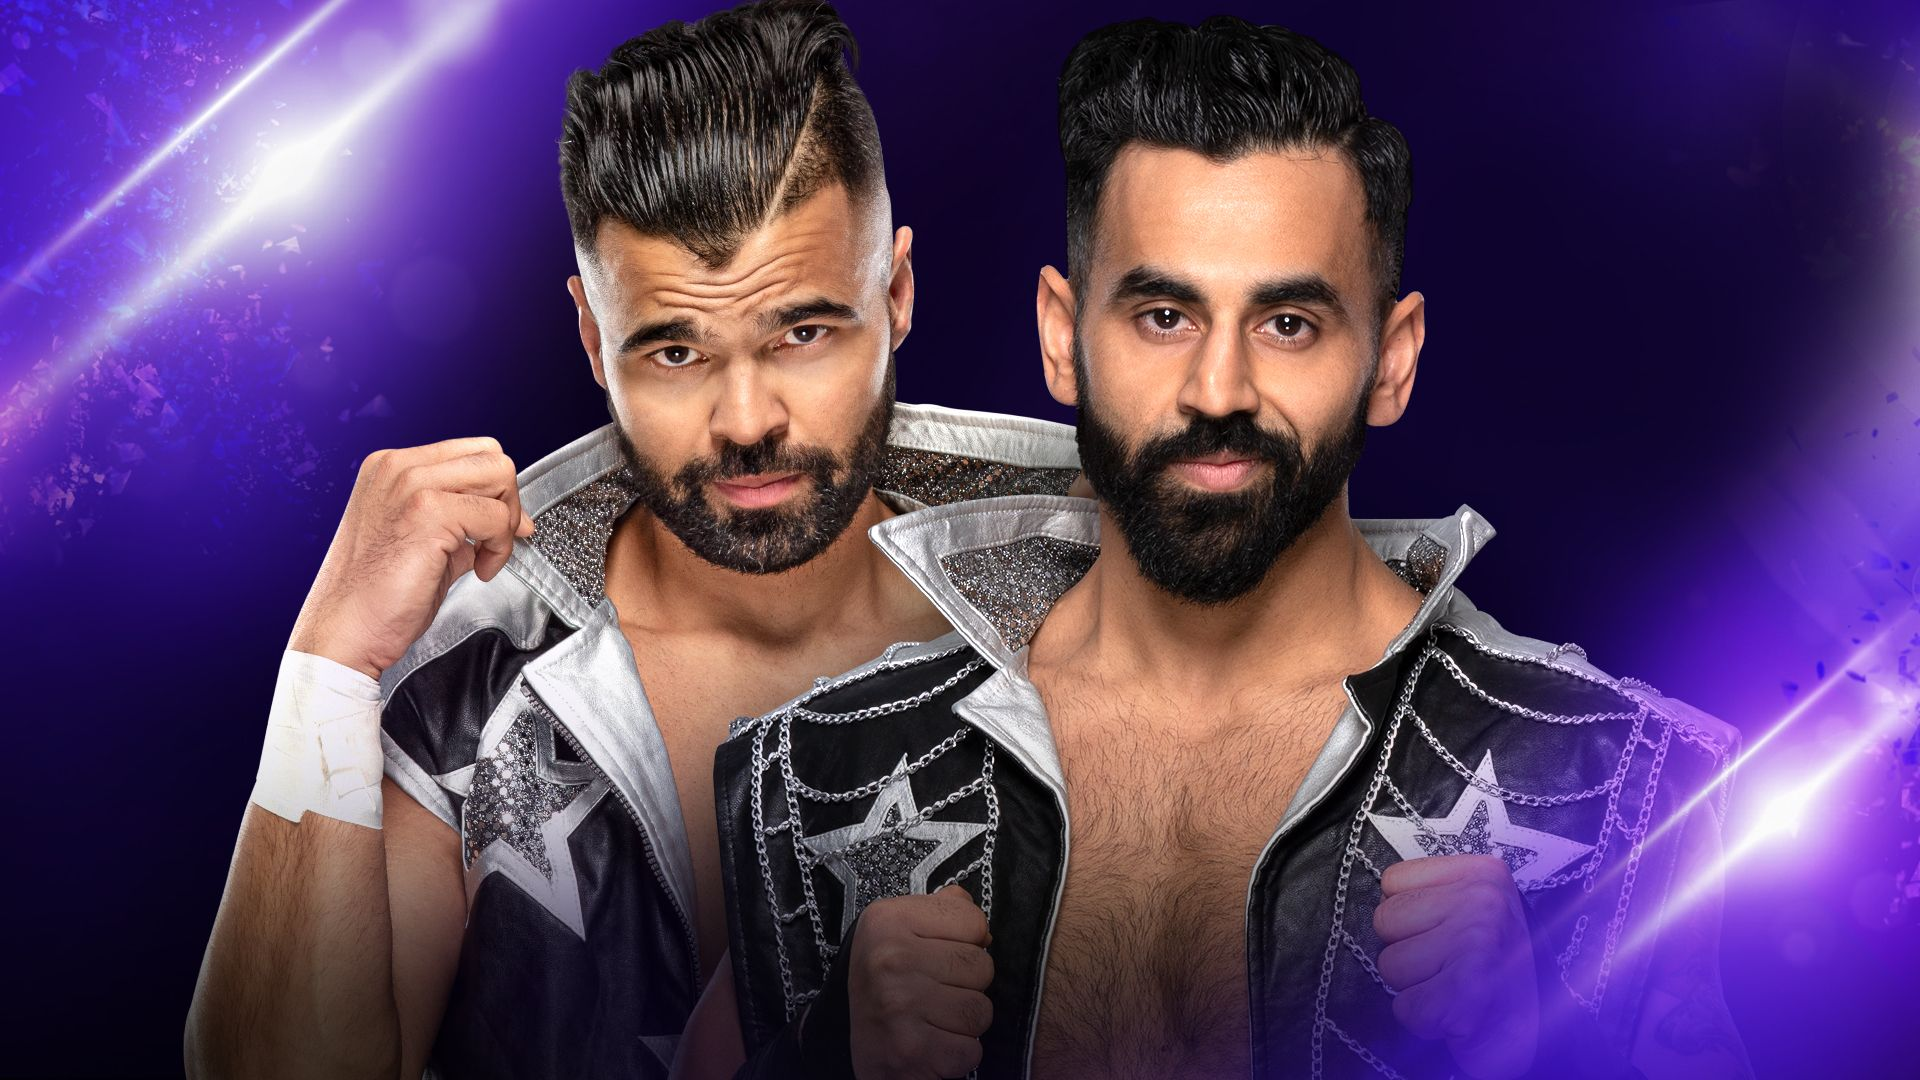 See The Matches That Made The Singh Brothers Tonight On Wwe Network In 2020 Wwe Wrestling News Wrestling Videos